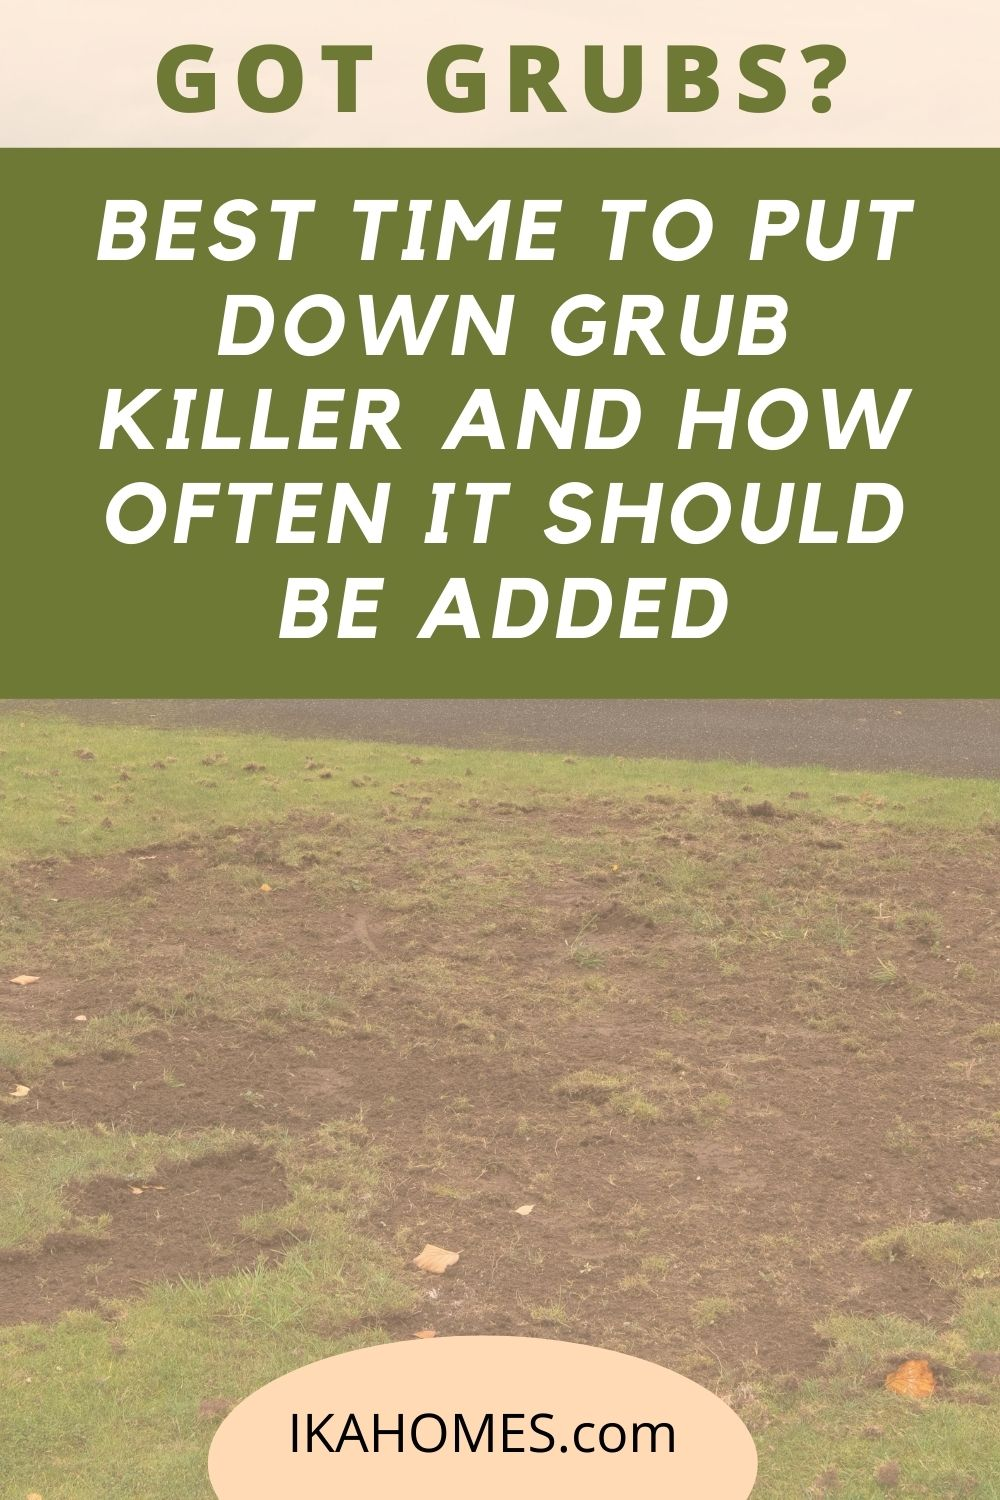 Best Time to Put Down Grub Killer and How Often it Should Be Added